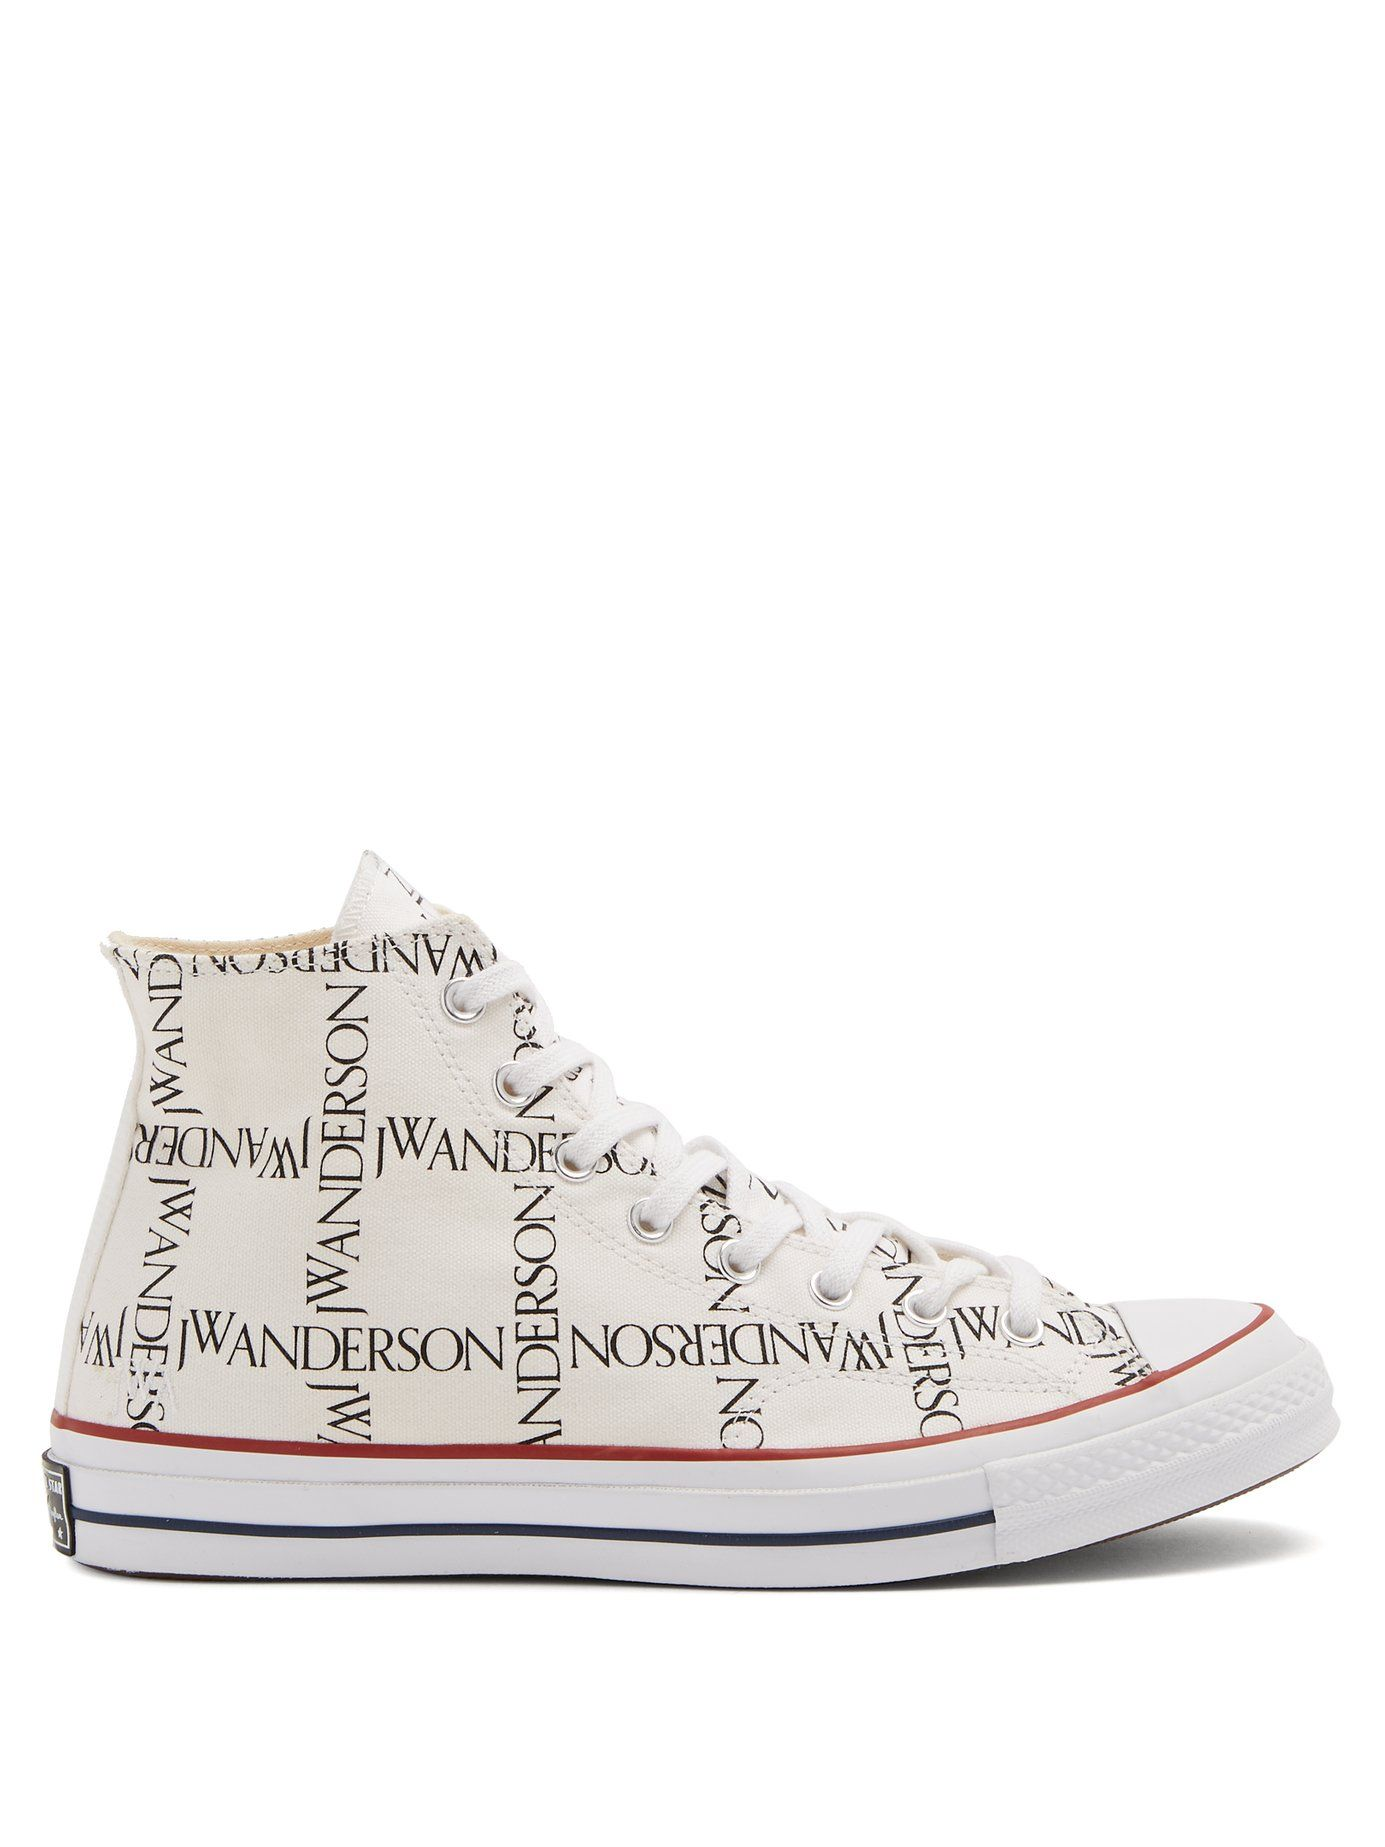 330cd4dabfdc9b CONVERSE X JW ANDERSON X JW ANDERSON LOGO-PRINT HIGH-TOP TRAINERS.   conversexjwanderson  cloth